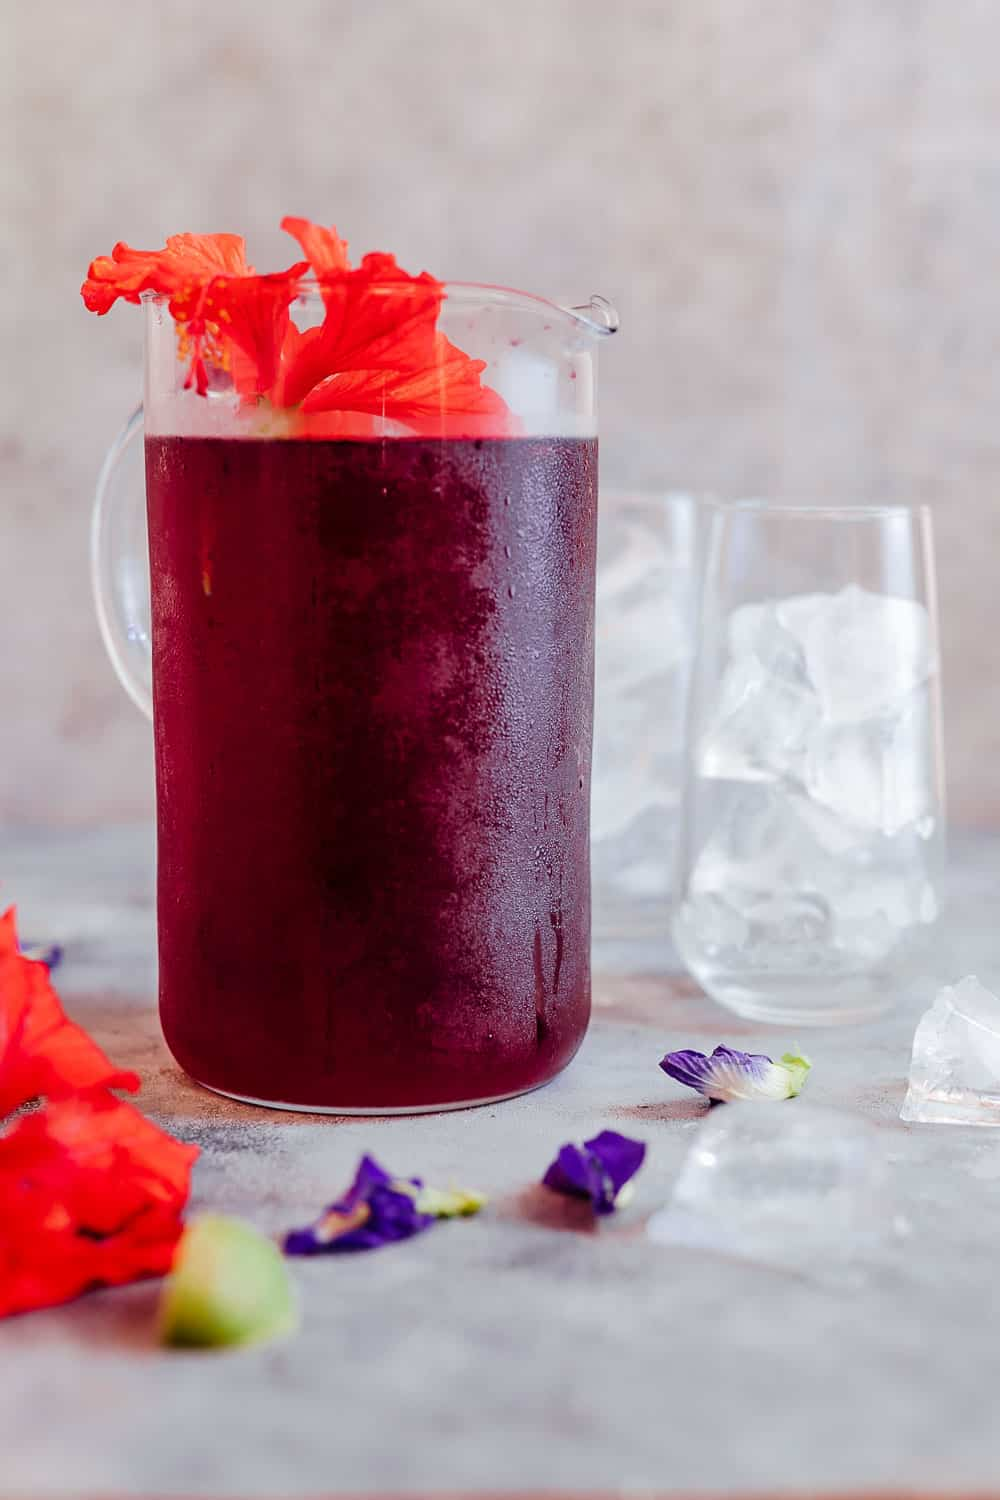 How to make hibiscus tea benefits and side effects iced hibiscus tea served in a large jug with fresh hibuscus flowers izmirmasajfo